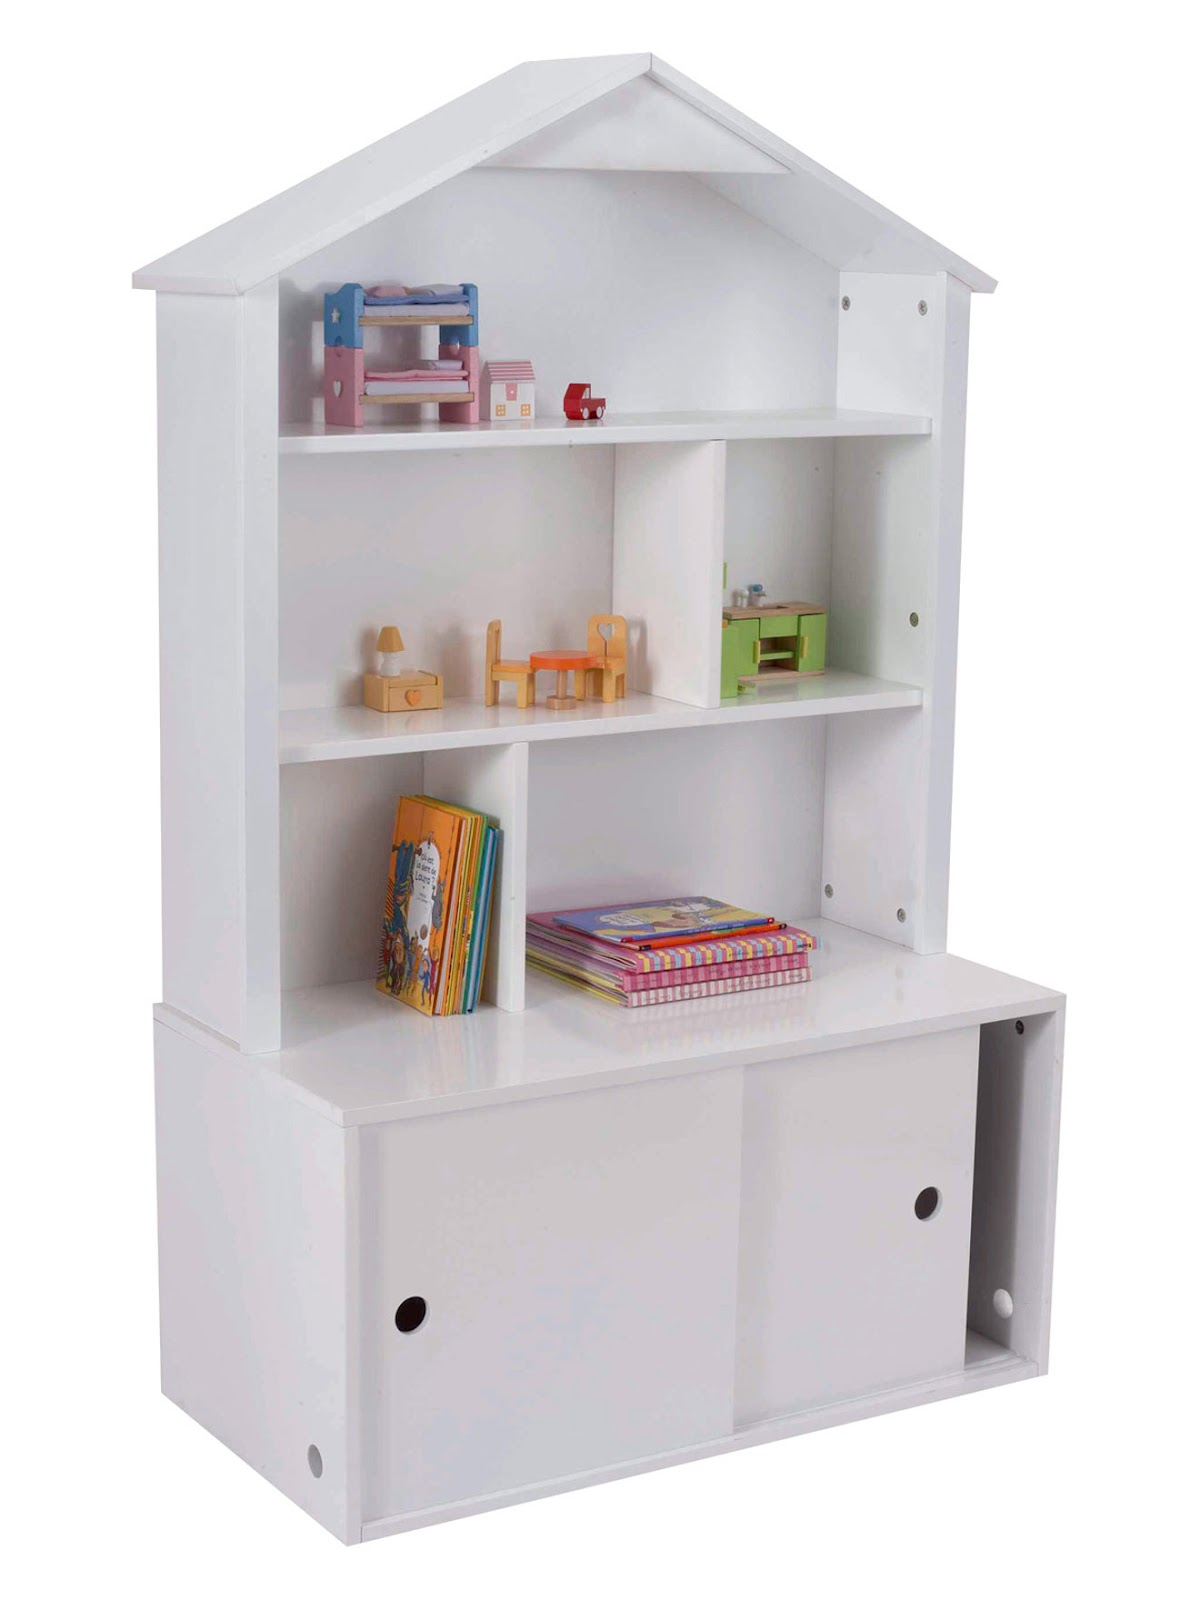 Casitas estanter as librer a para ni as decoractual for Casita de plastico para jardin